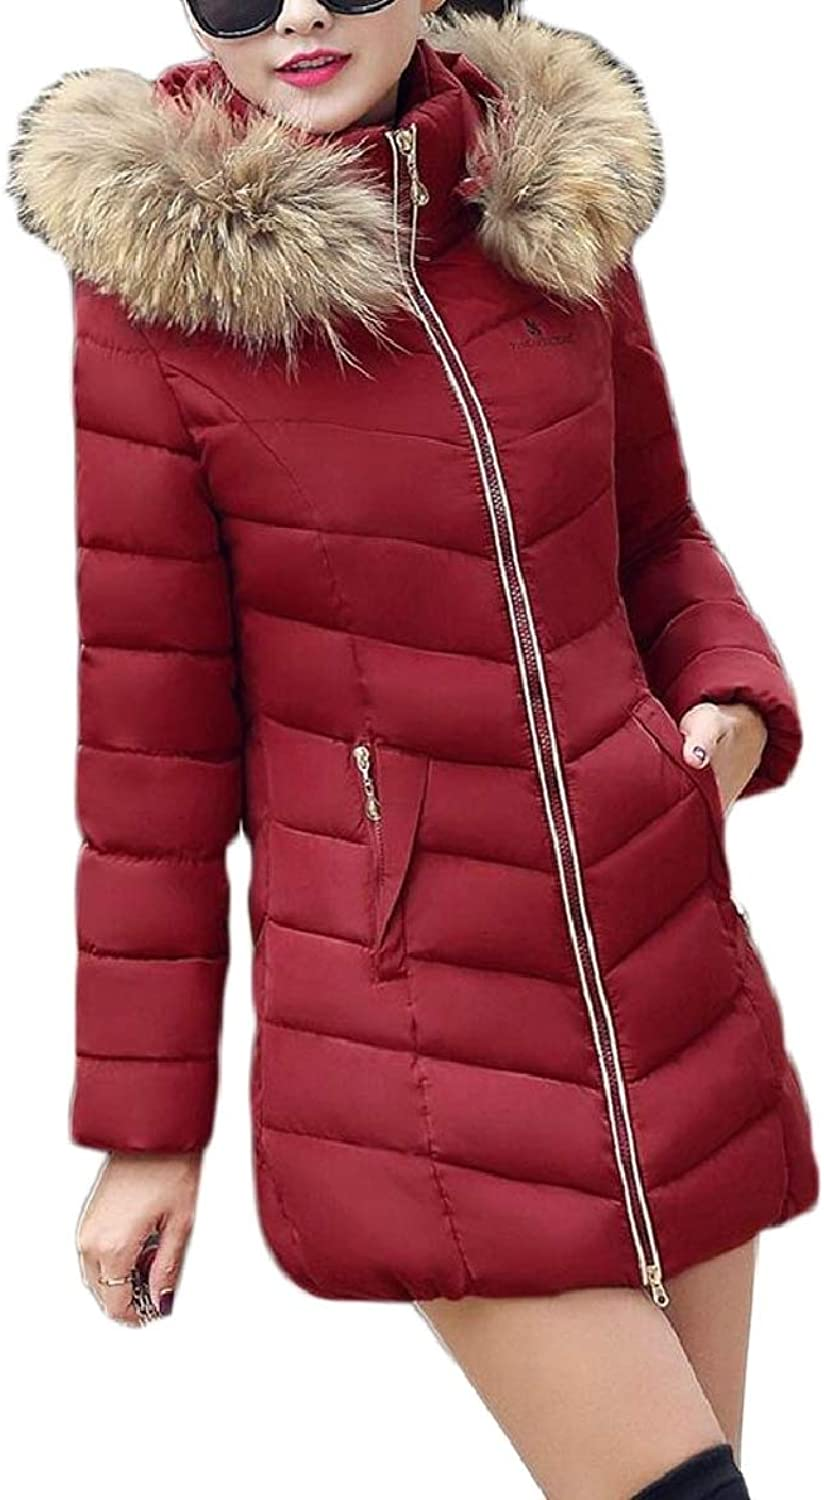 TymhgtCA Women Winter Puffer Jacket Faux Fur Hood Fashion Warm Thicken Coat